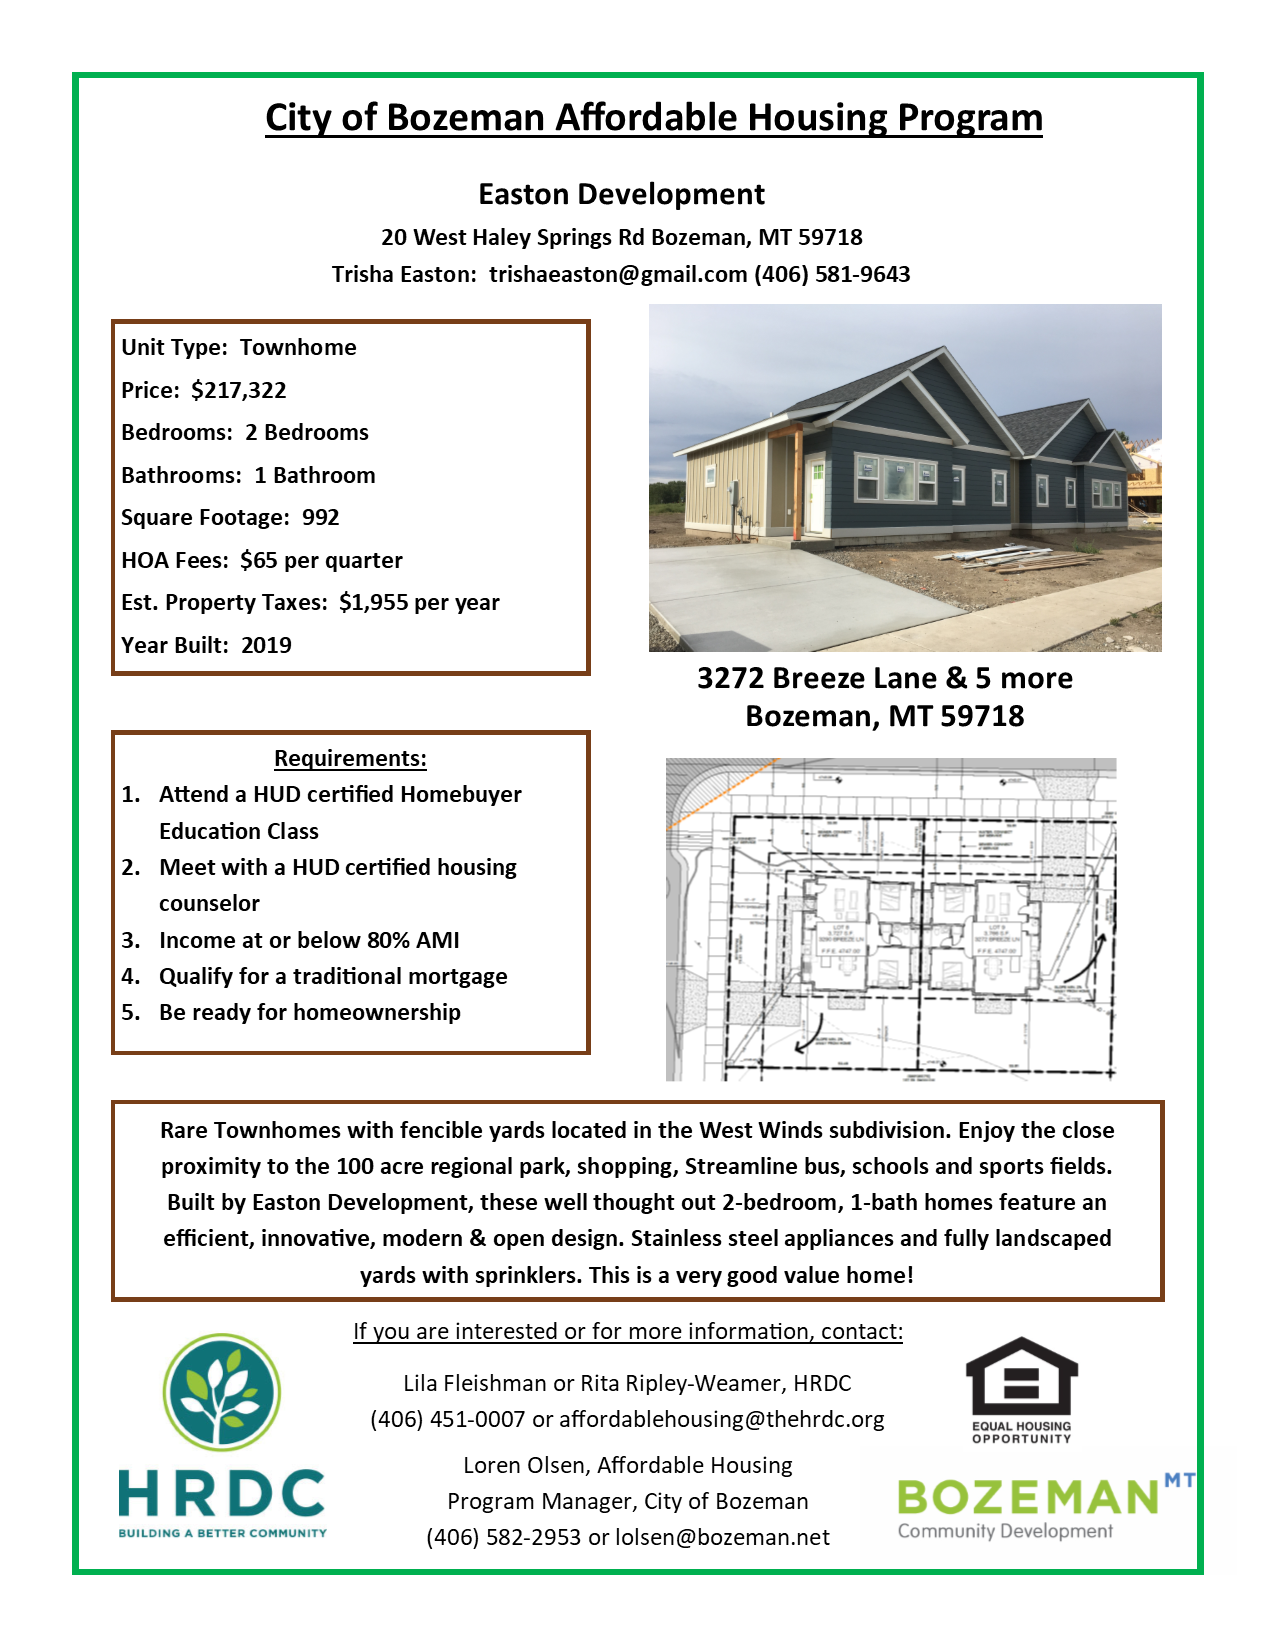 For Sale Property Flyer Image